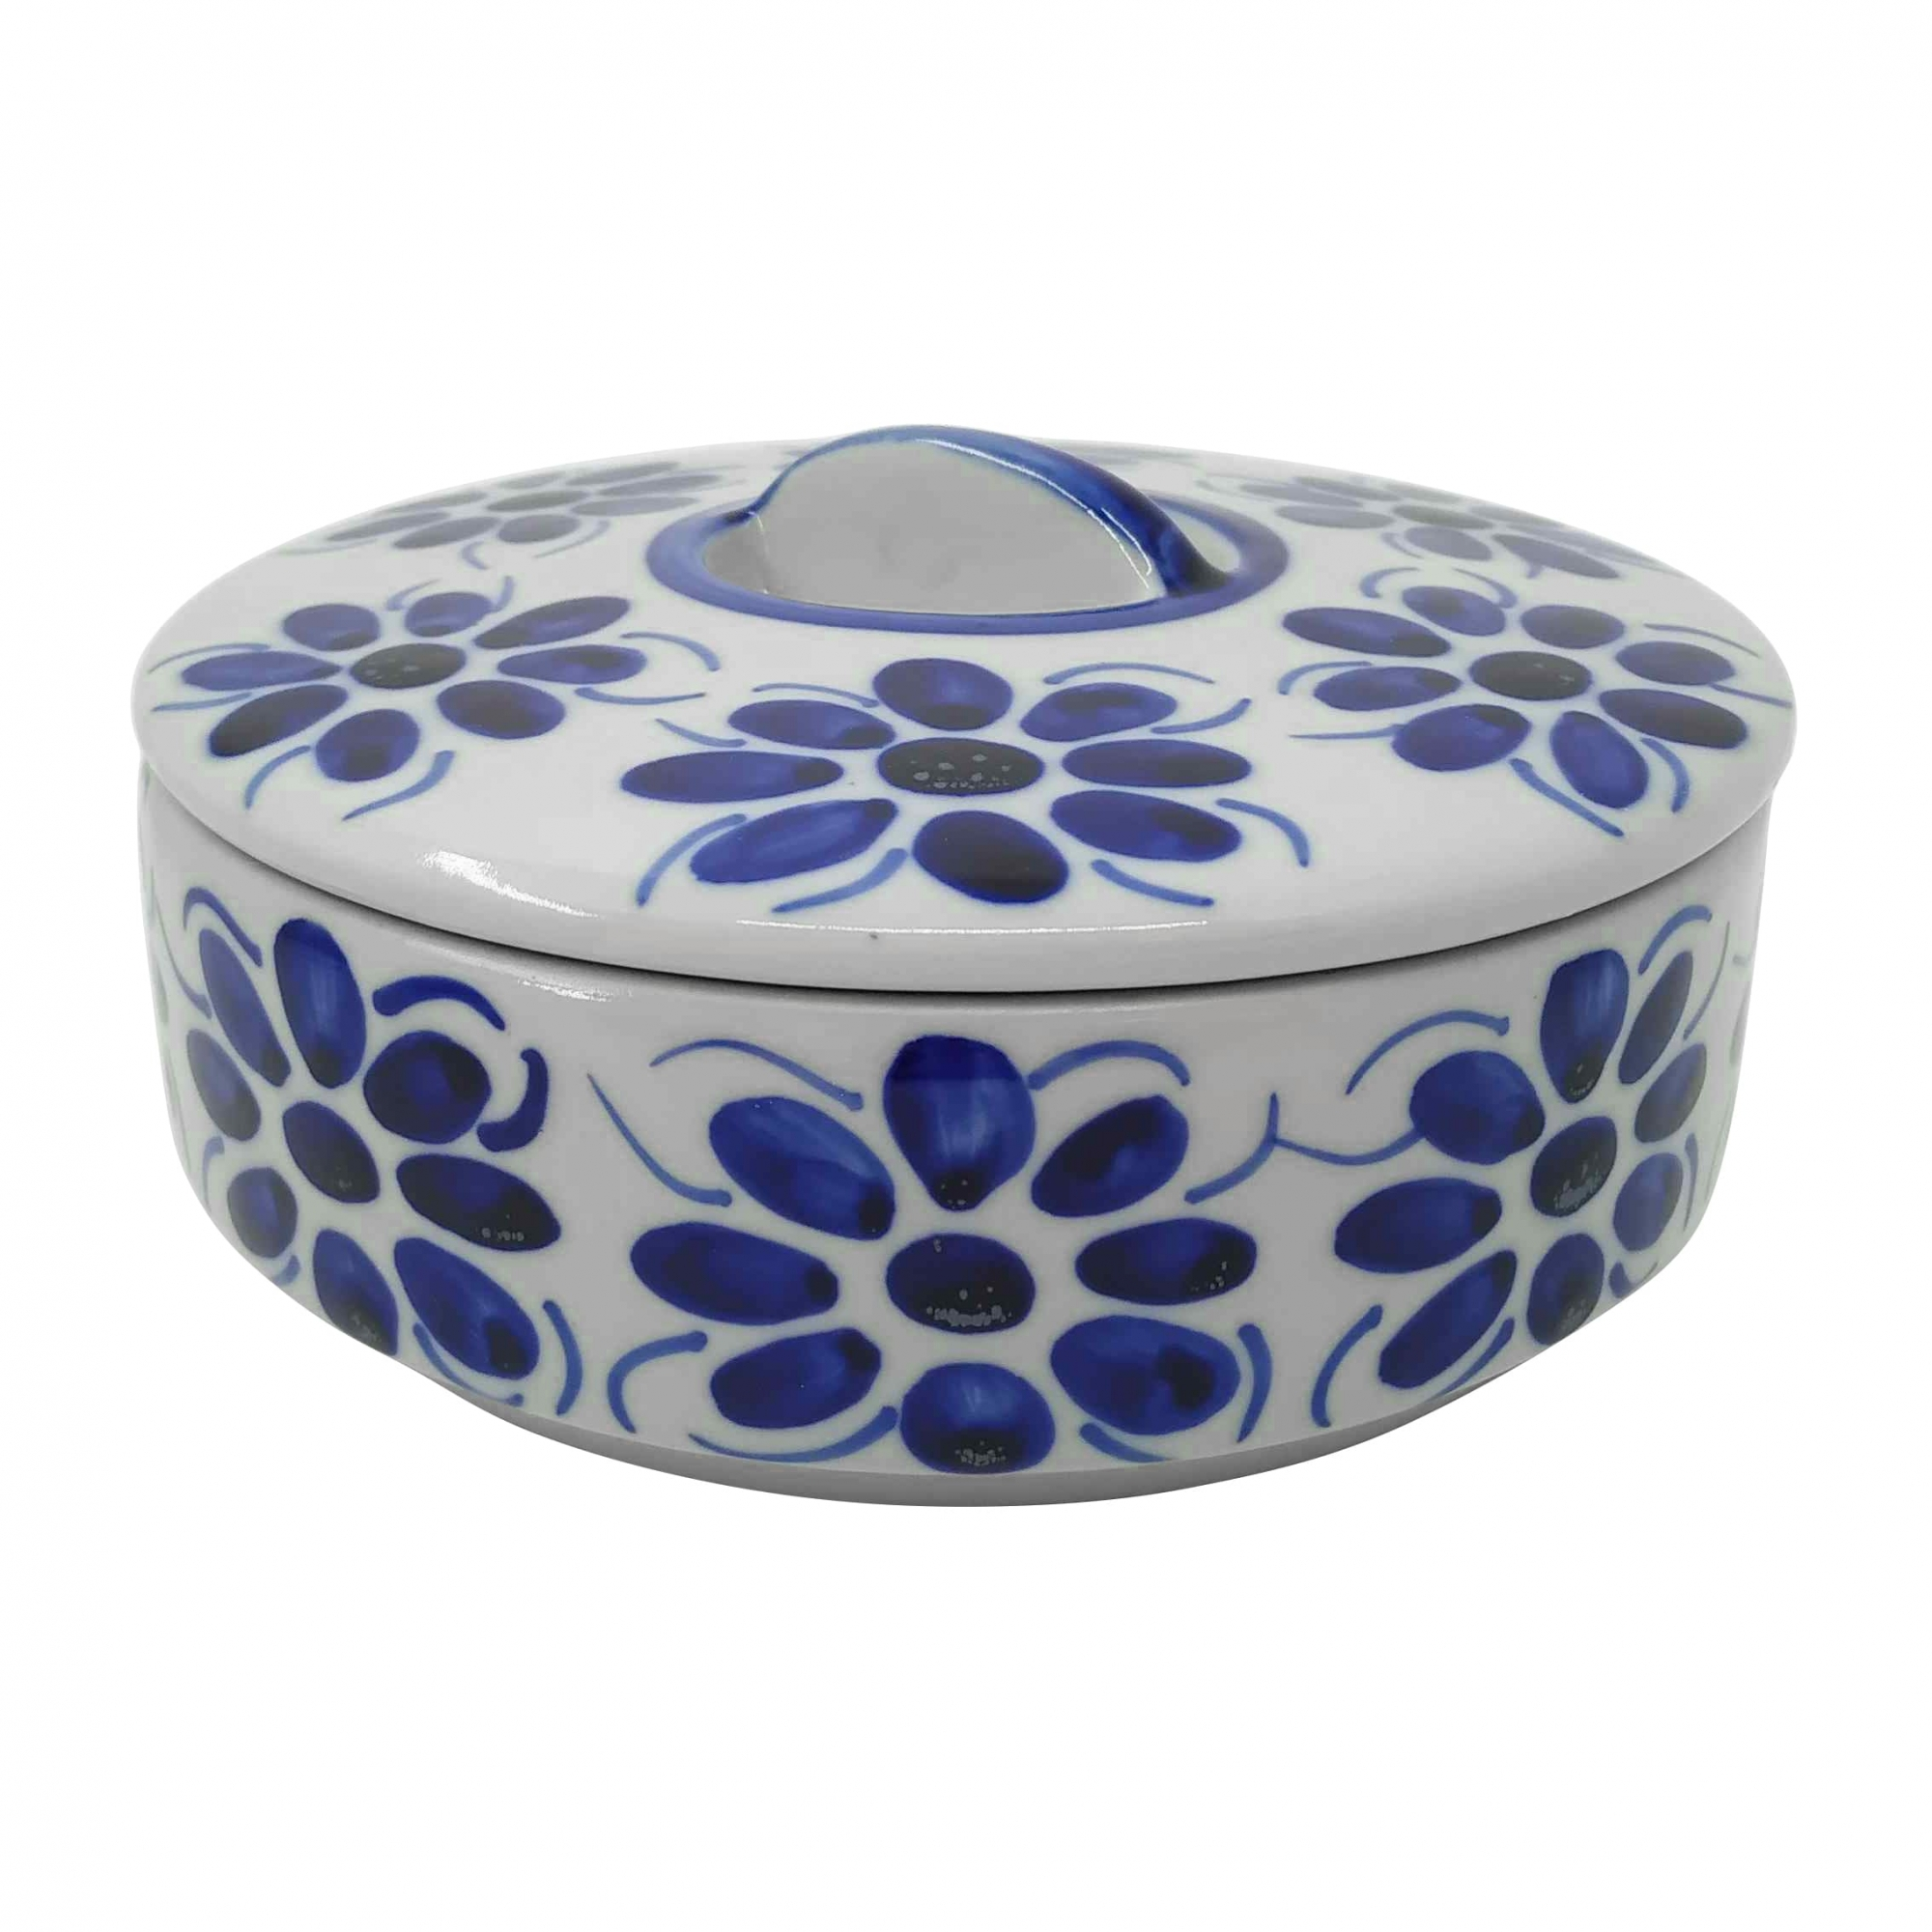 Pote Porta Mantimento em Porcelana Azul Colonial 700 ml